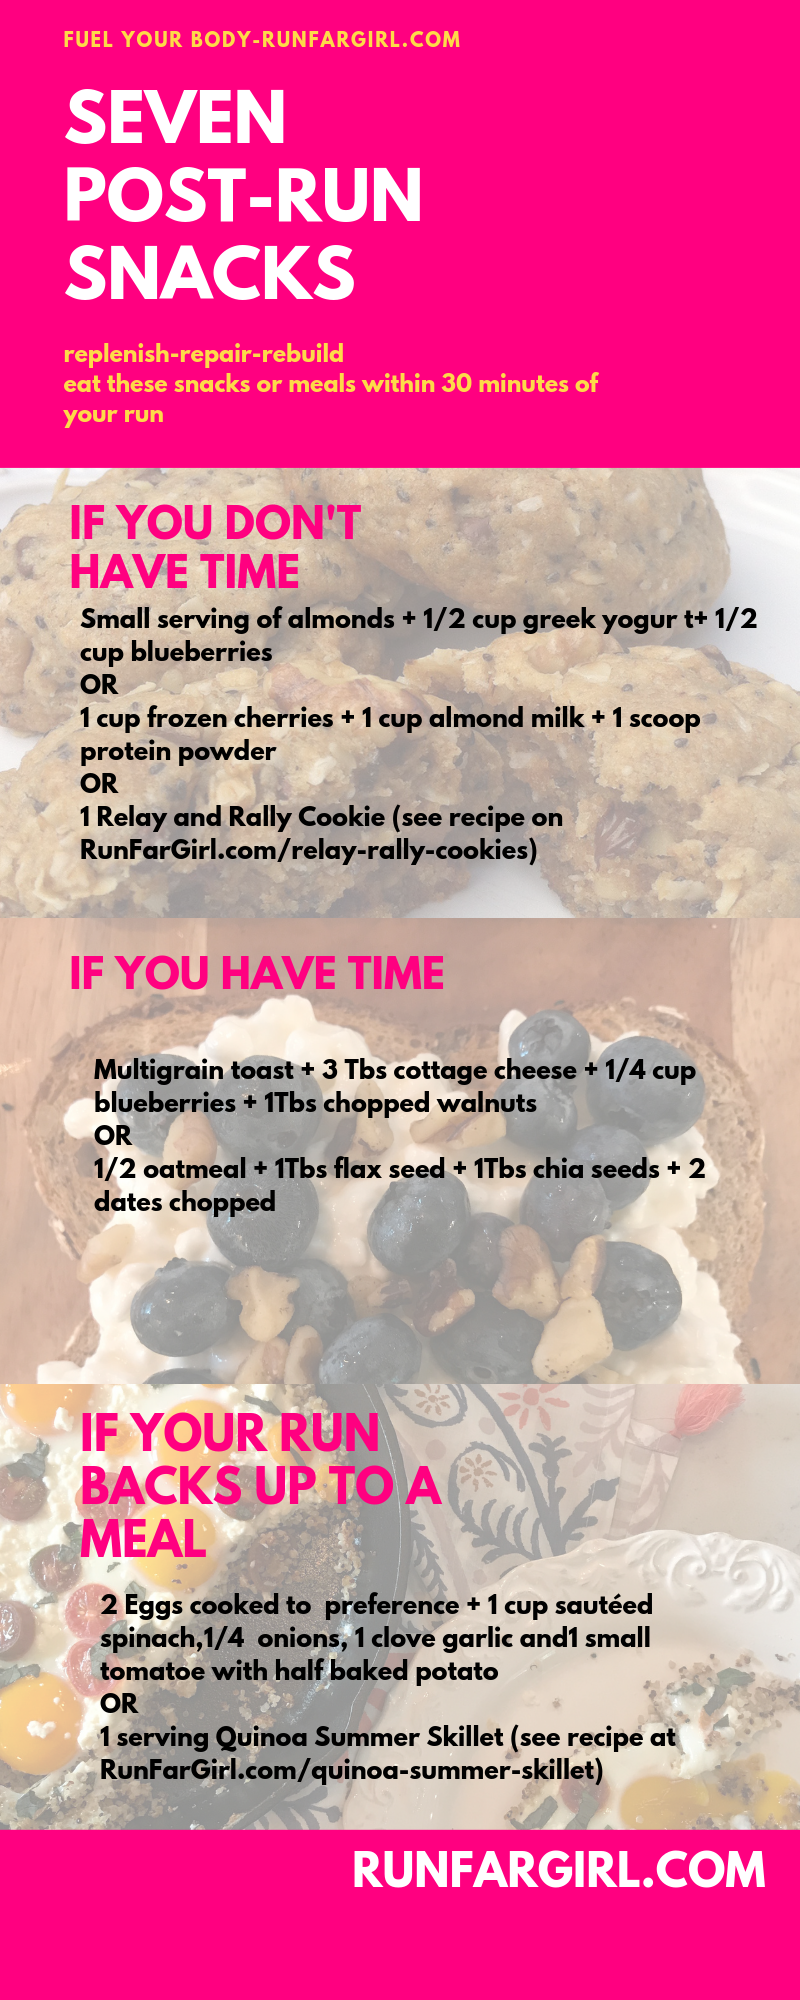 Nutrient dense post-run snack ideas from runfargirl